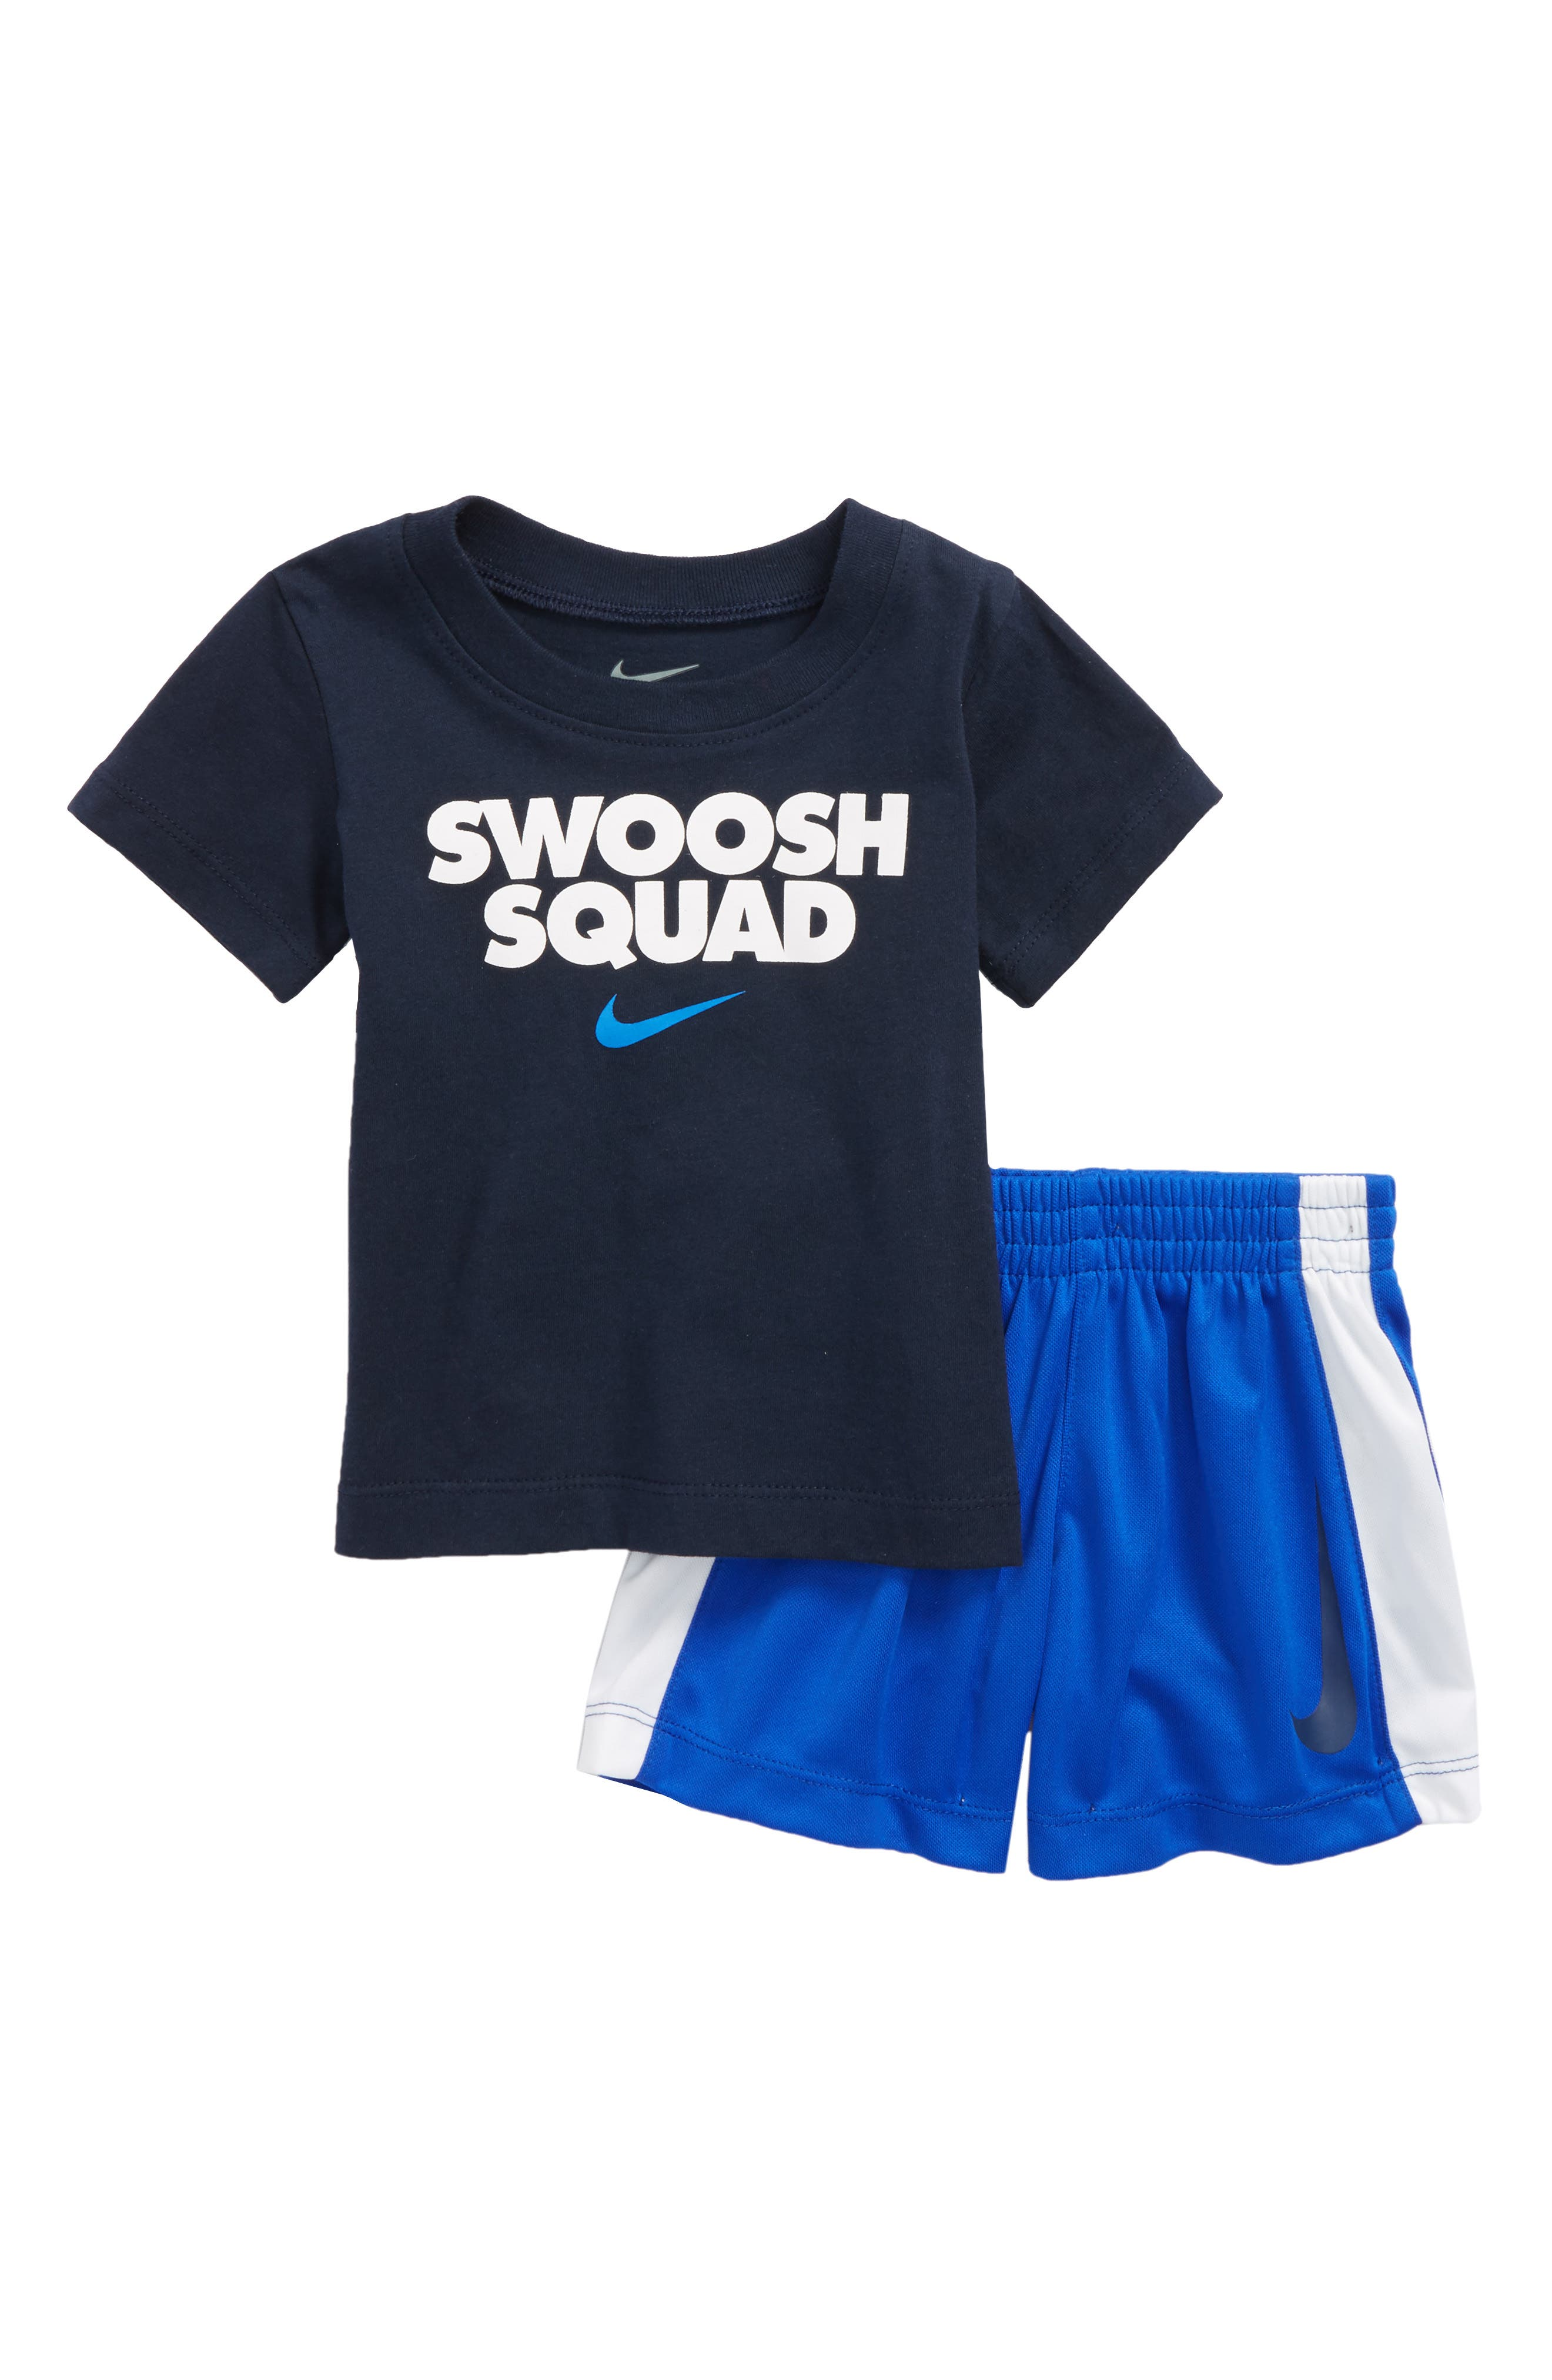 Swoosh Squad T-Shirt & Shorts Set,                         Main,                         color, Hyper Royal